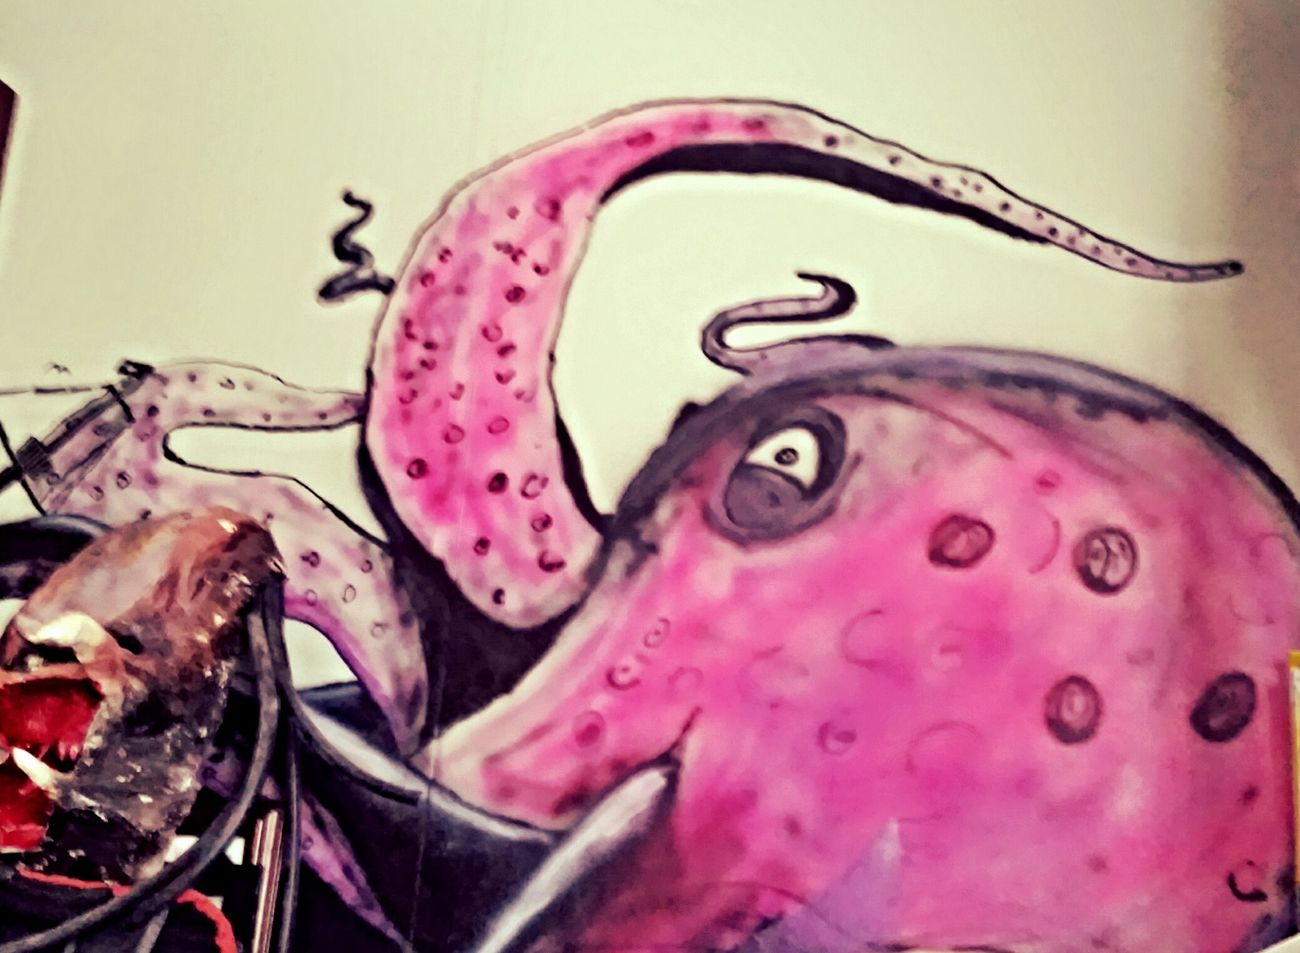 Airbrushed Graffiti Wall Painting Octopus ArtWork Art